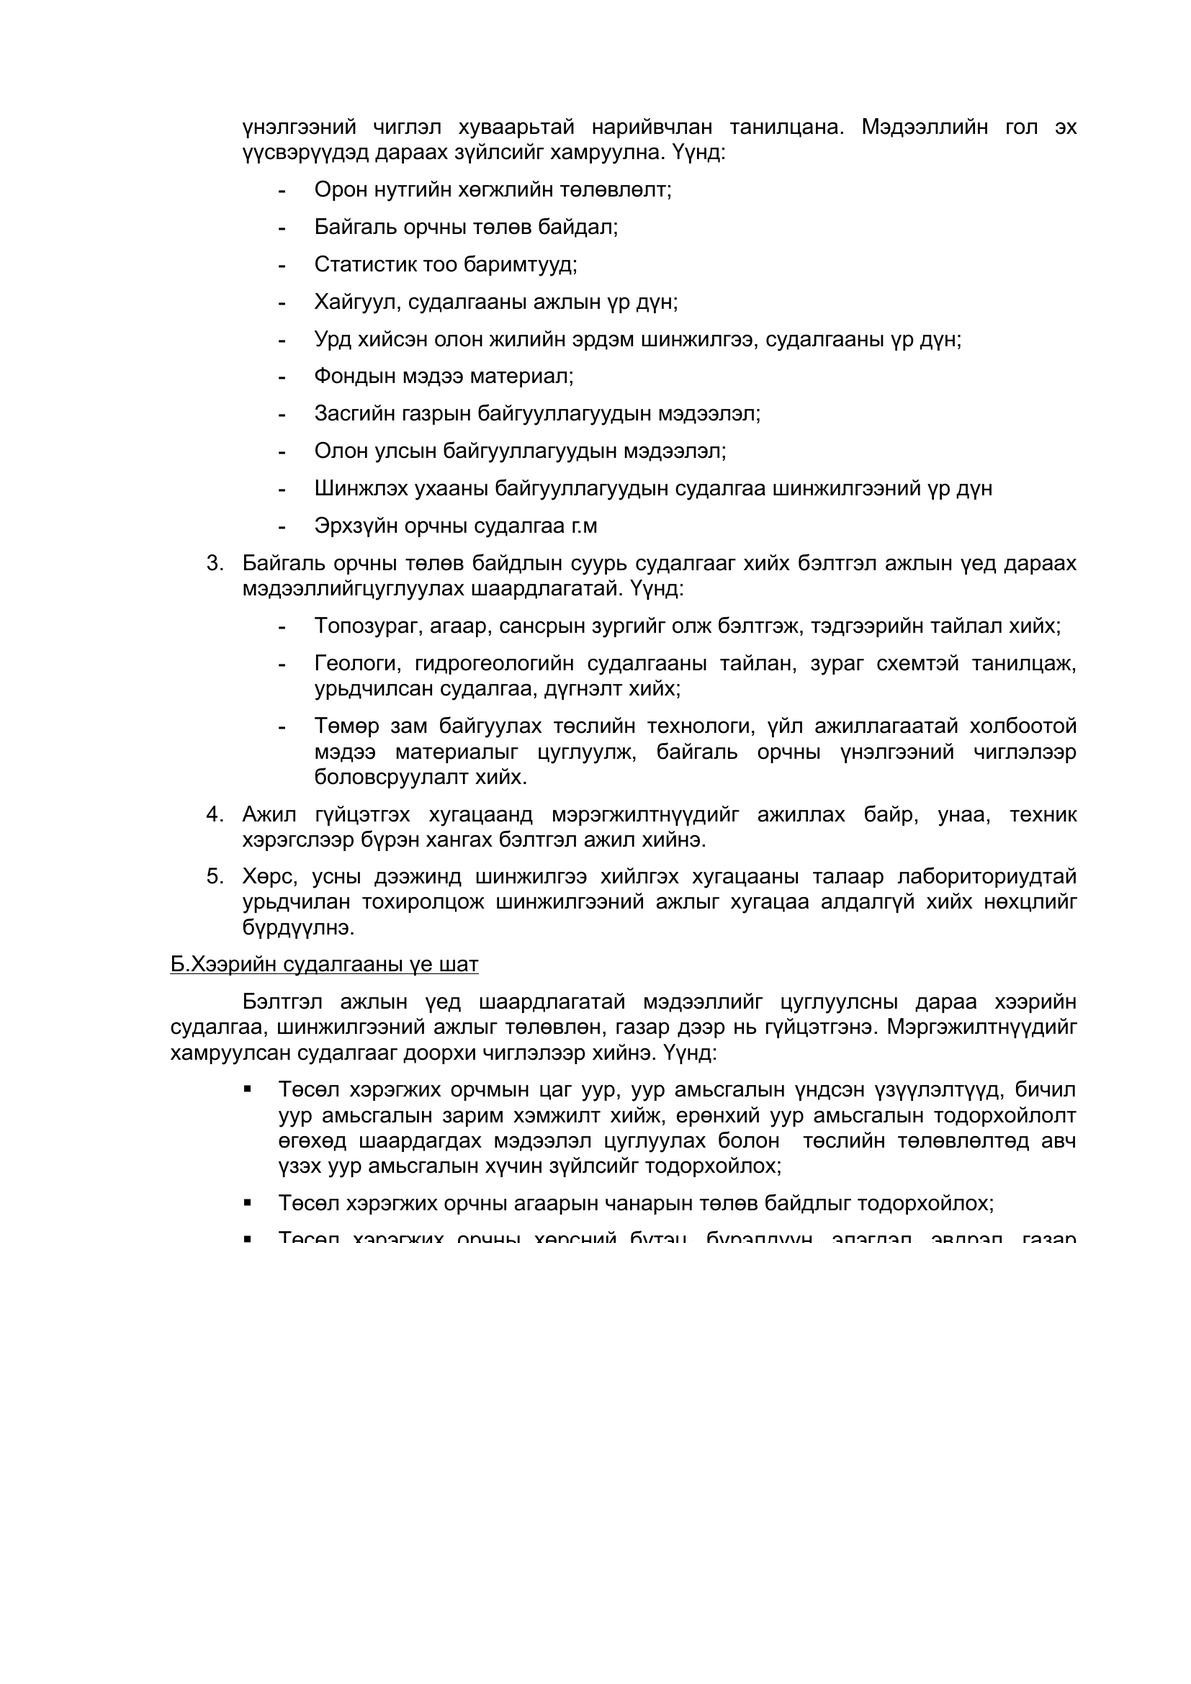 Contract for performing service for detailed environmental impact assessment-3